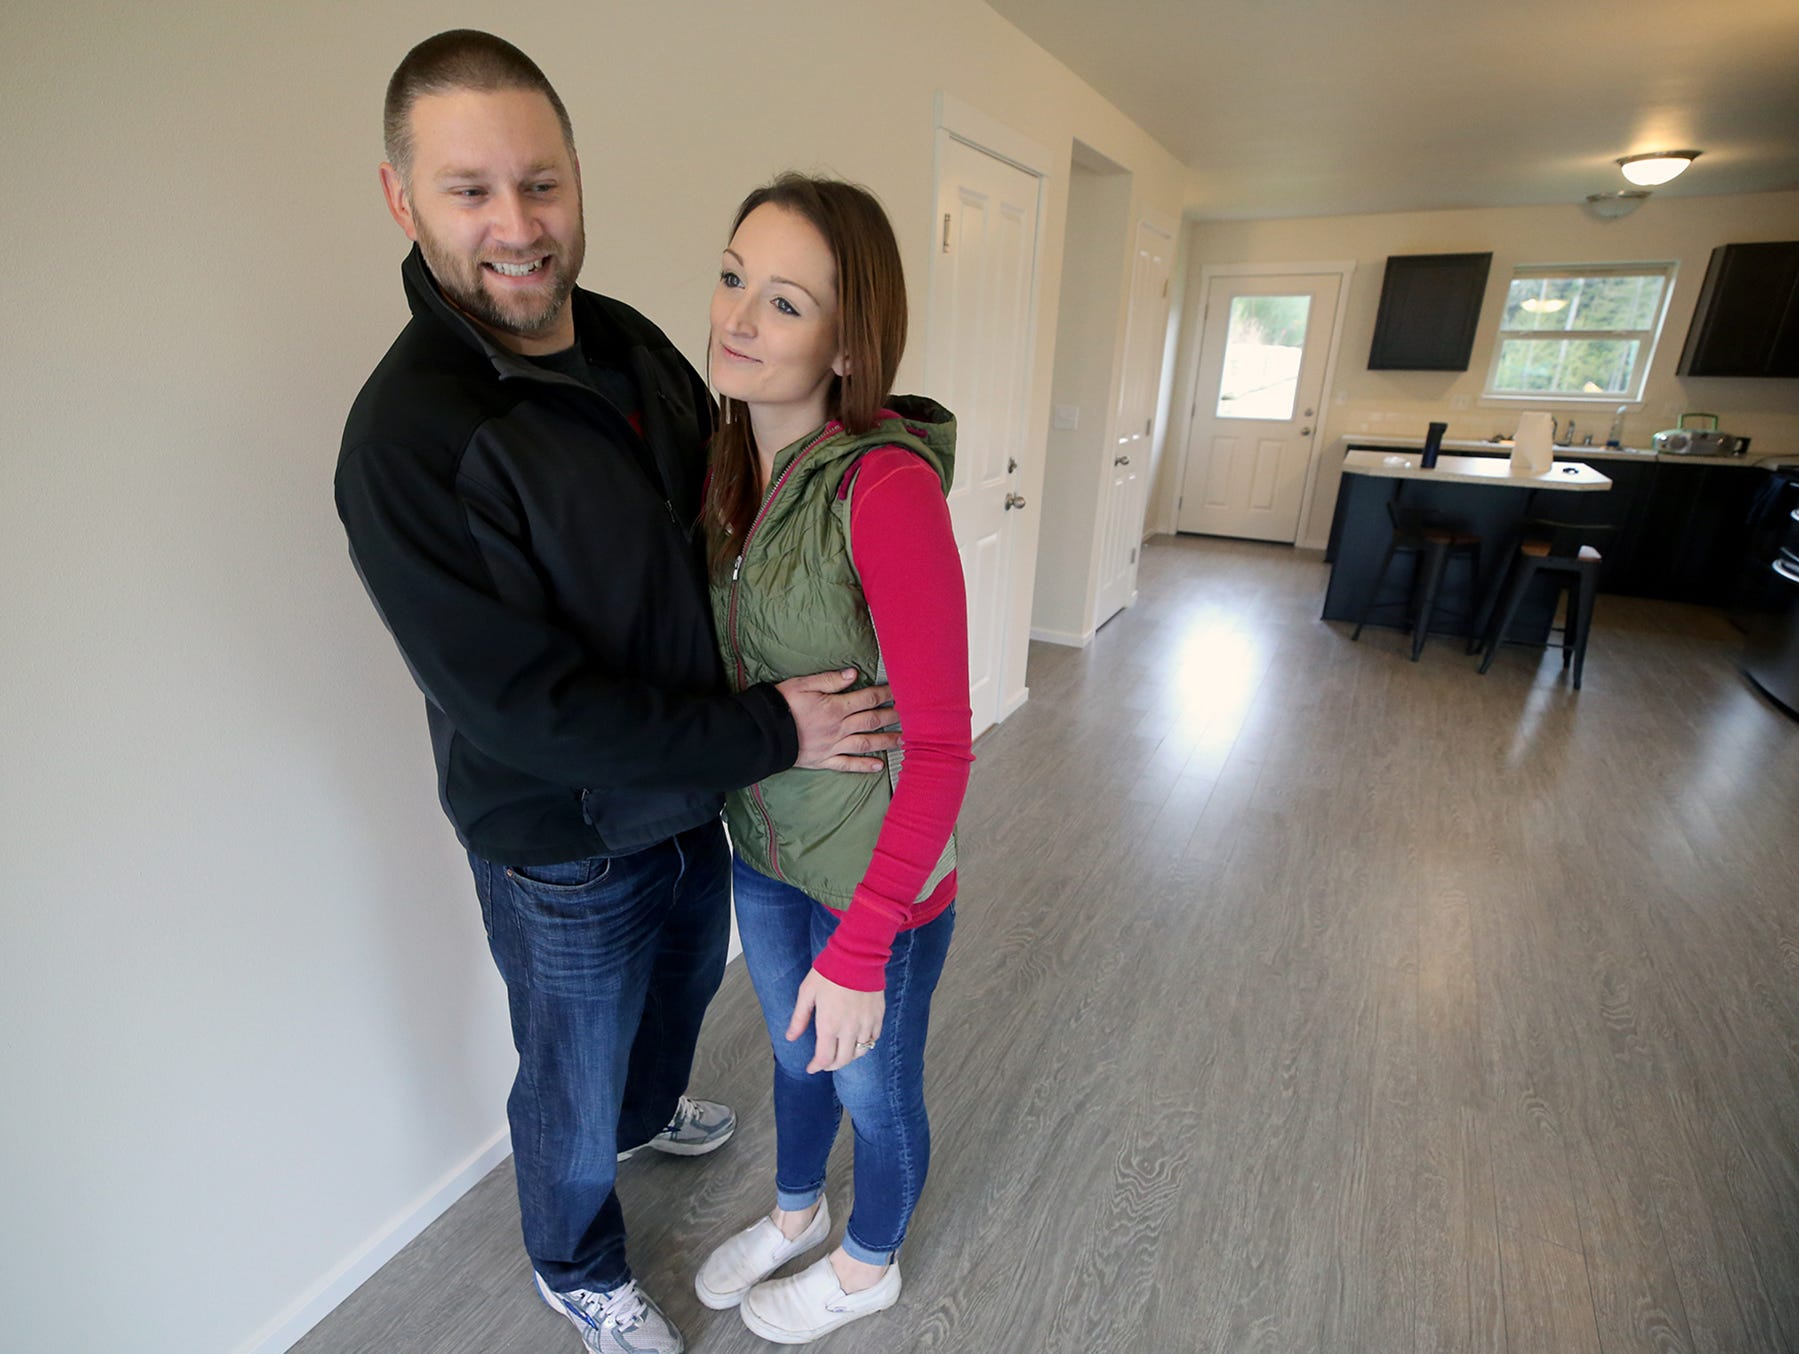 Brandon and Jessica Johnson inside their new home at the opening ceremony of the Maple Lane Group One Kitsap Housing development in Kington on Friday, December 14, 2018.